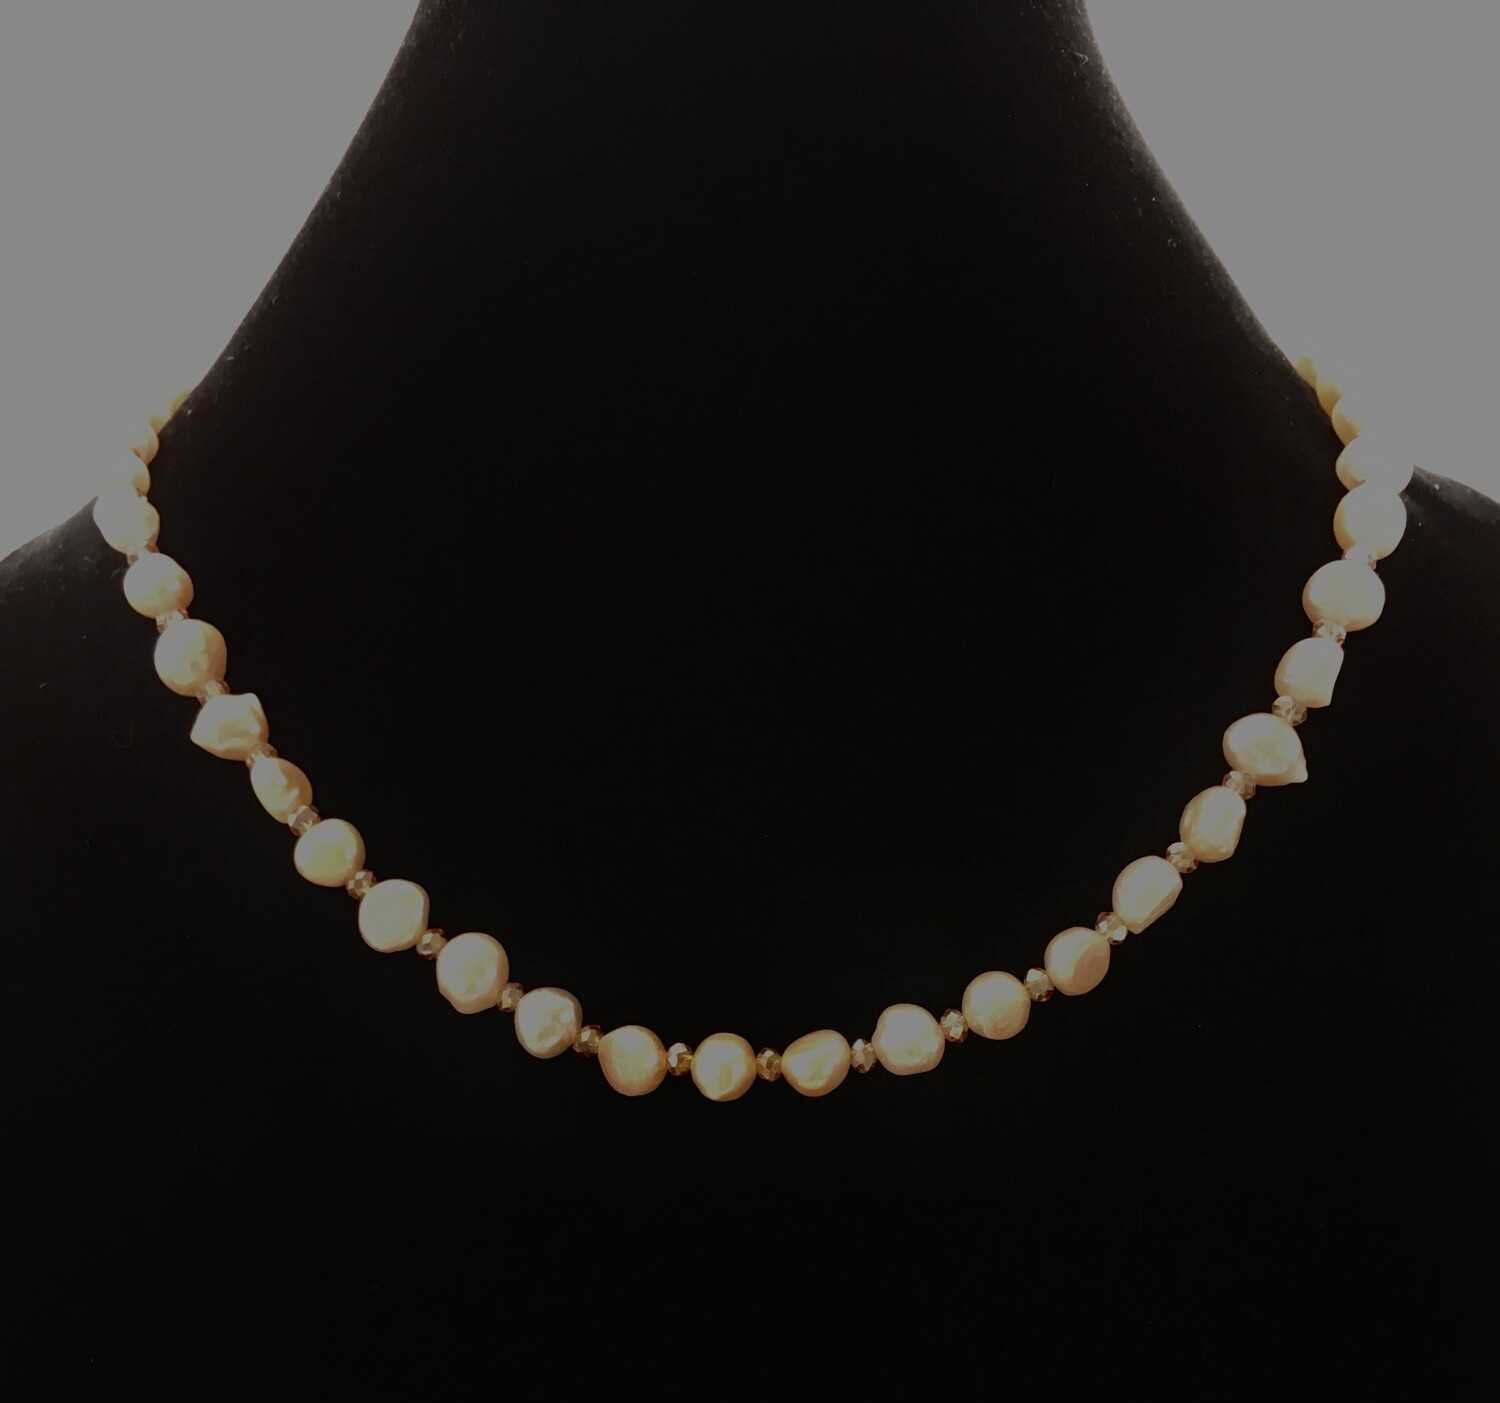 Pearl necklace with Swarovski crystal spacers